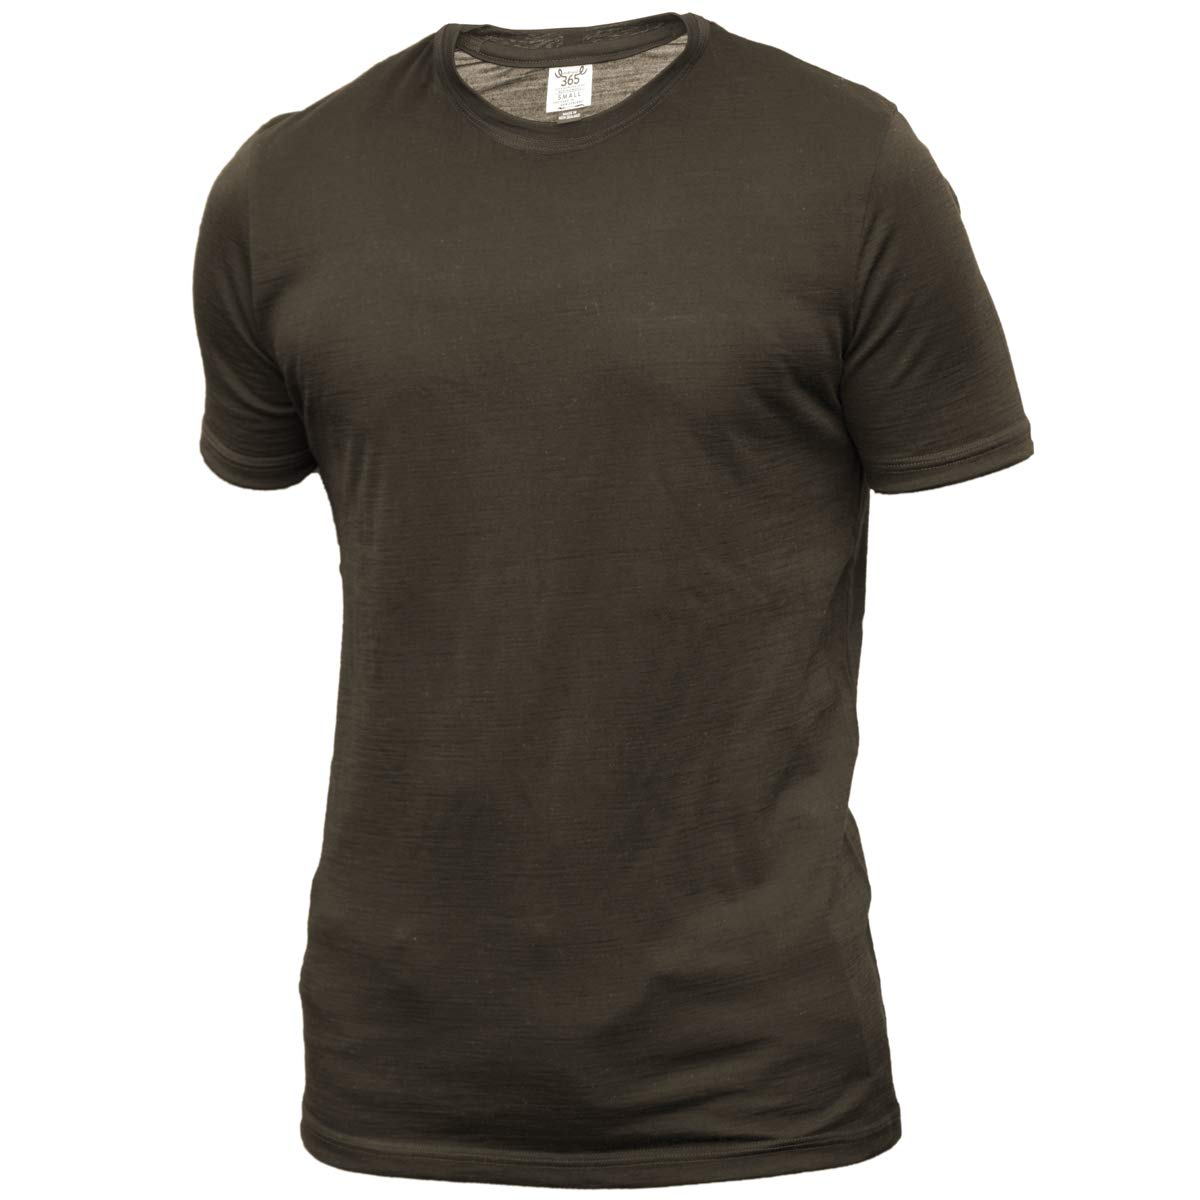 Merino 365 Men's Crew Short Sleeve X-Large, Olive by Merino 365